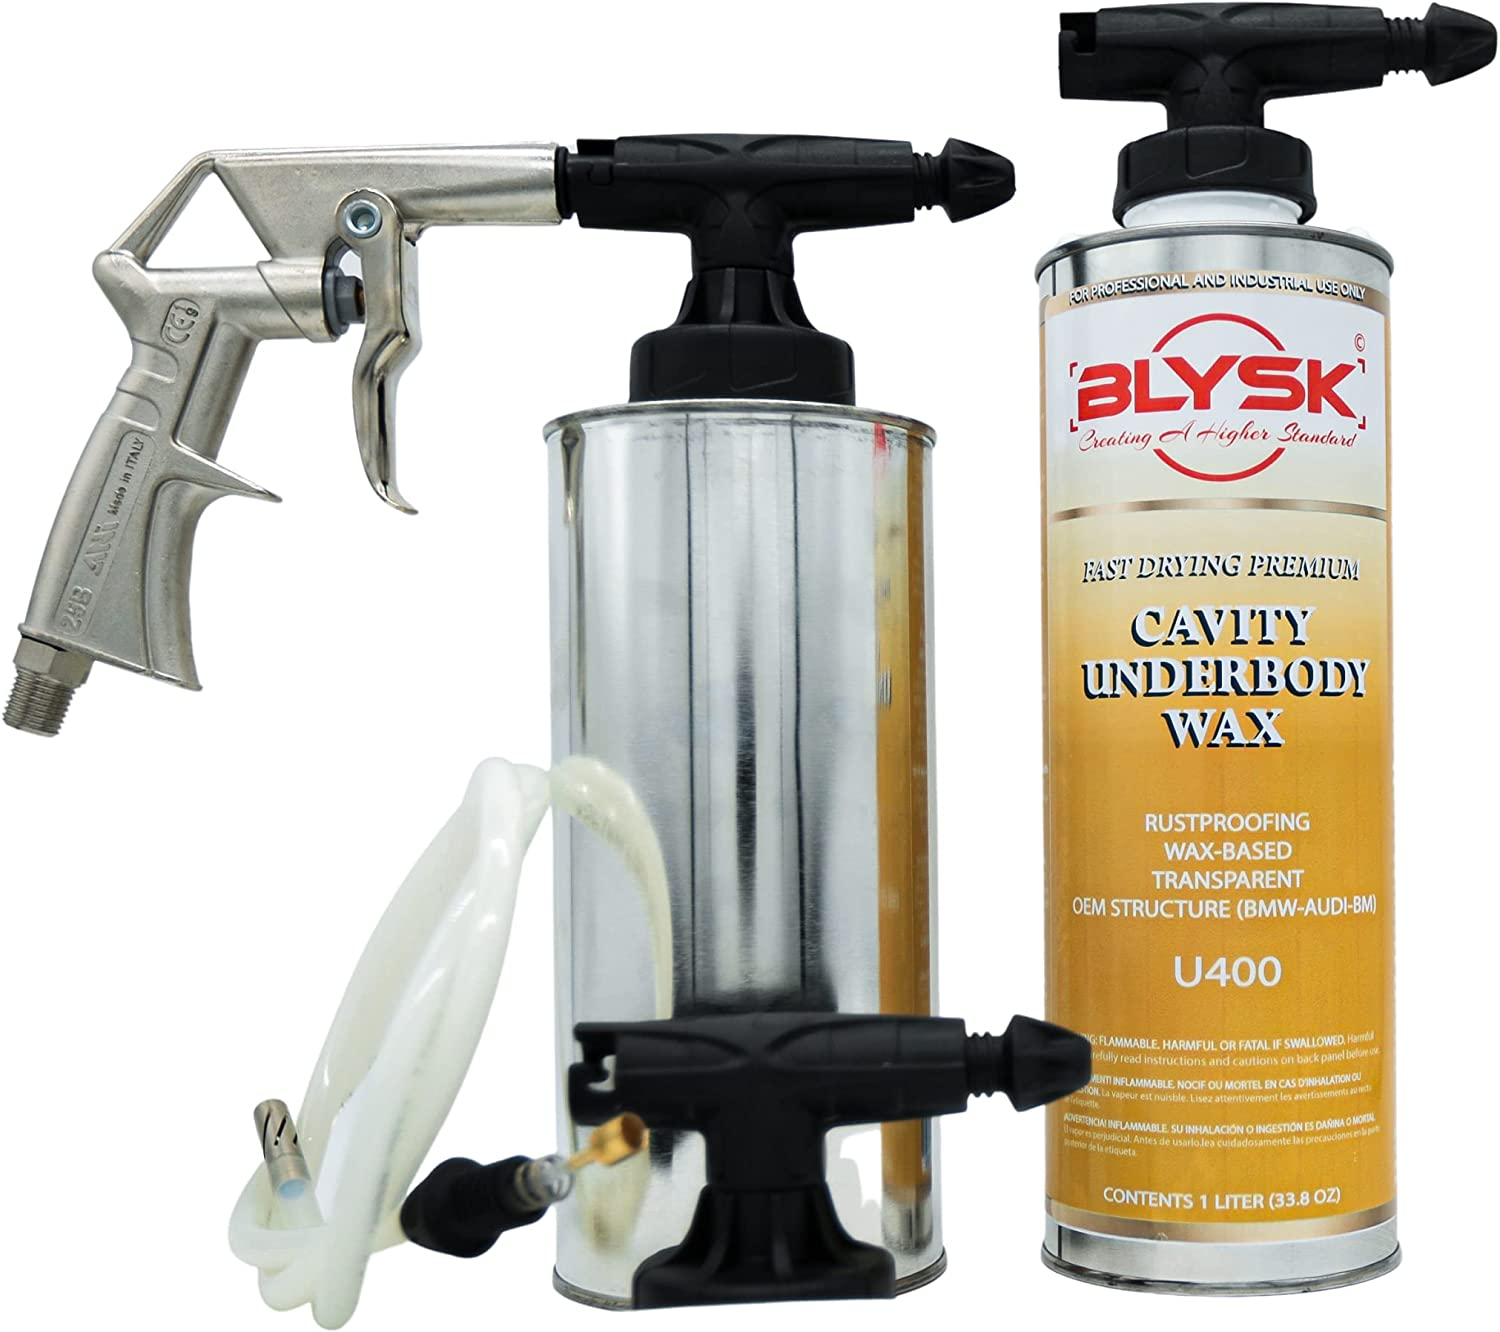 BLYSK Protection Pack – Spray and Unde Cavity Kit Equipment sold out 100% quality warranty